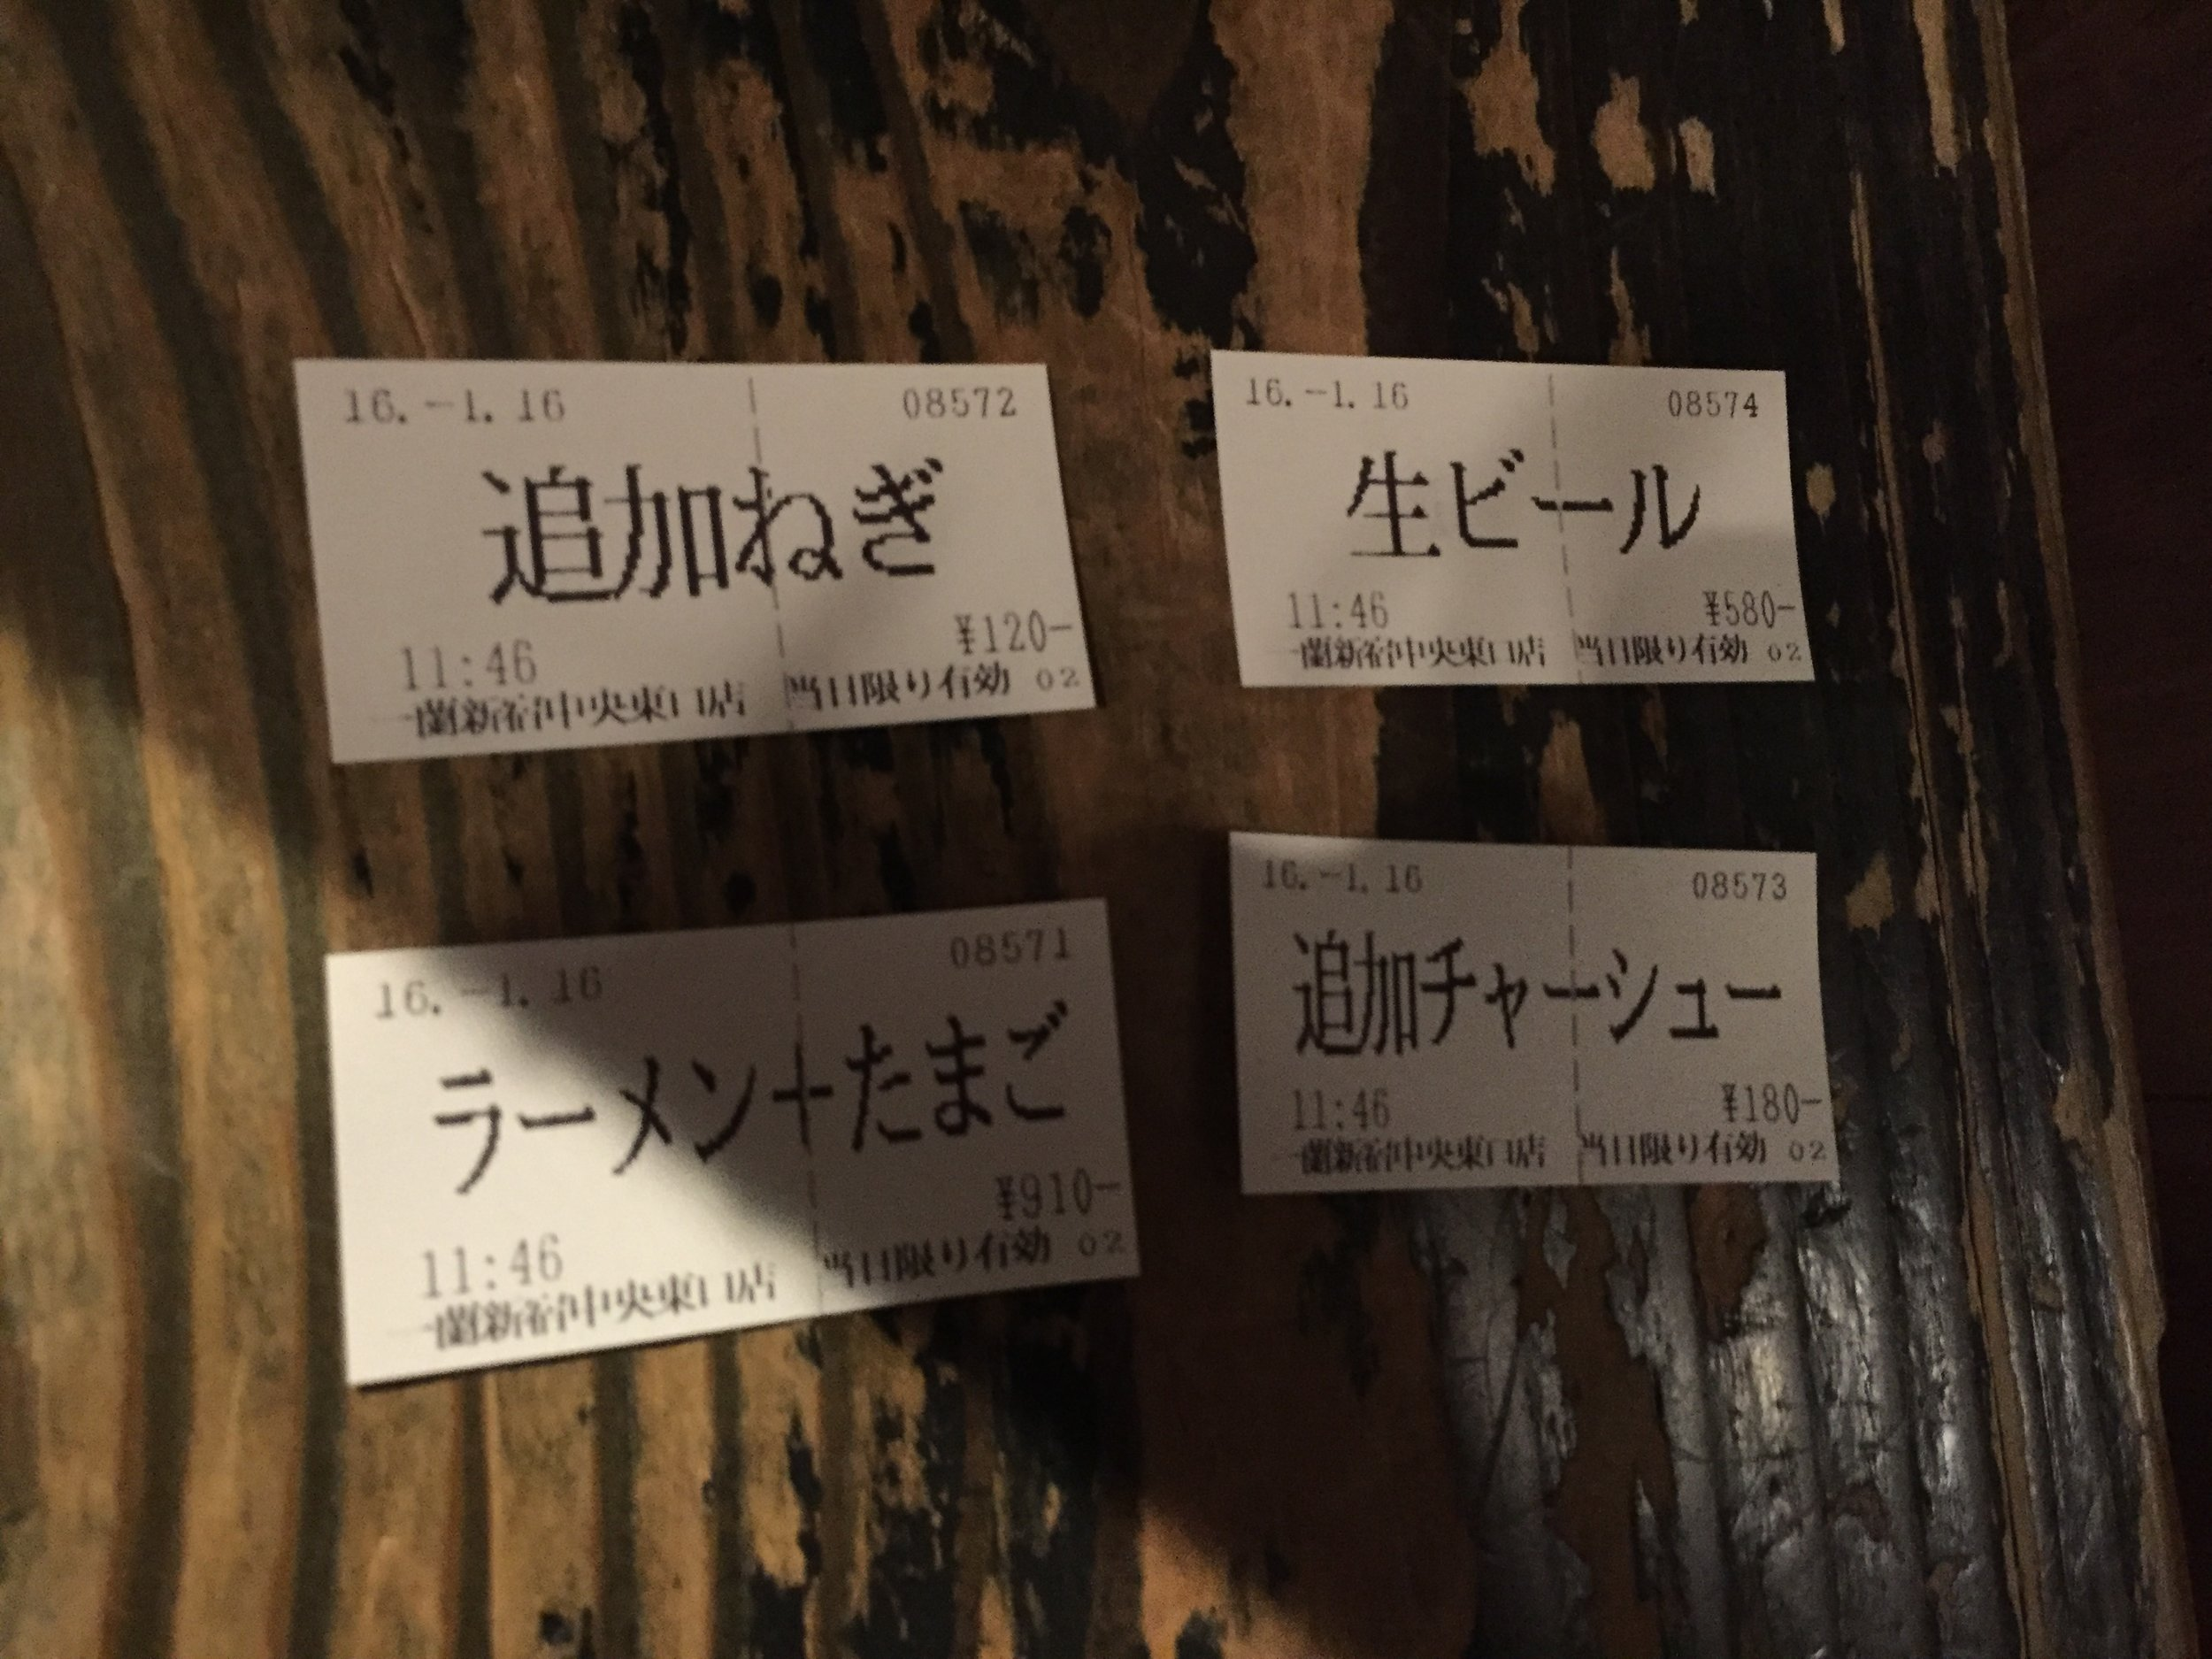 ichiran ramen tickets